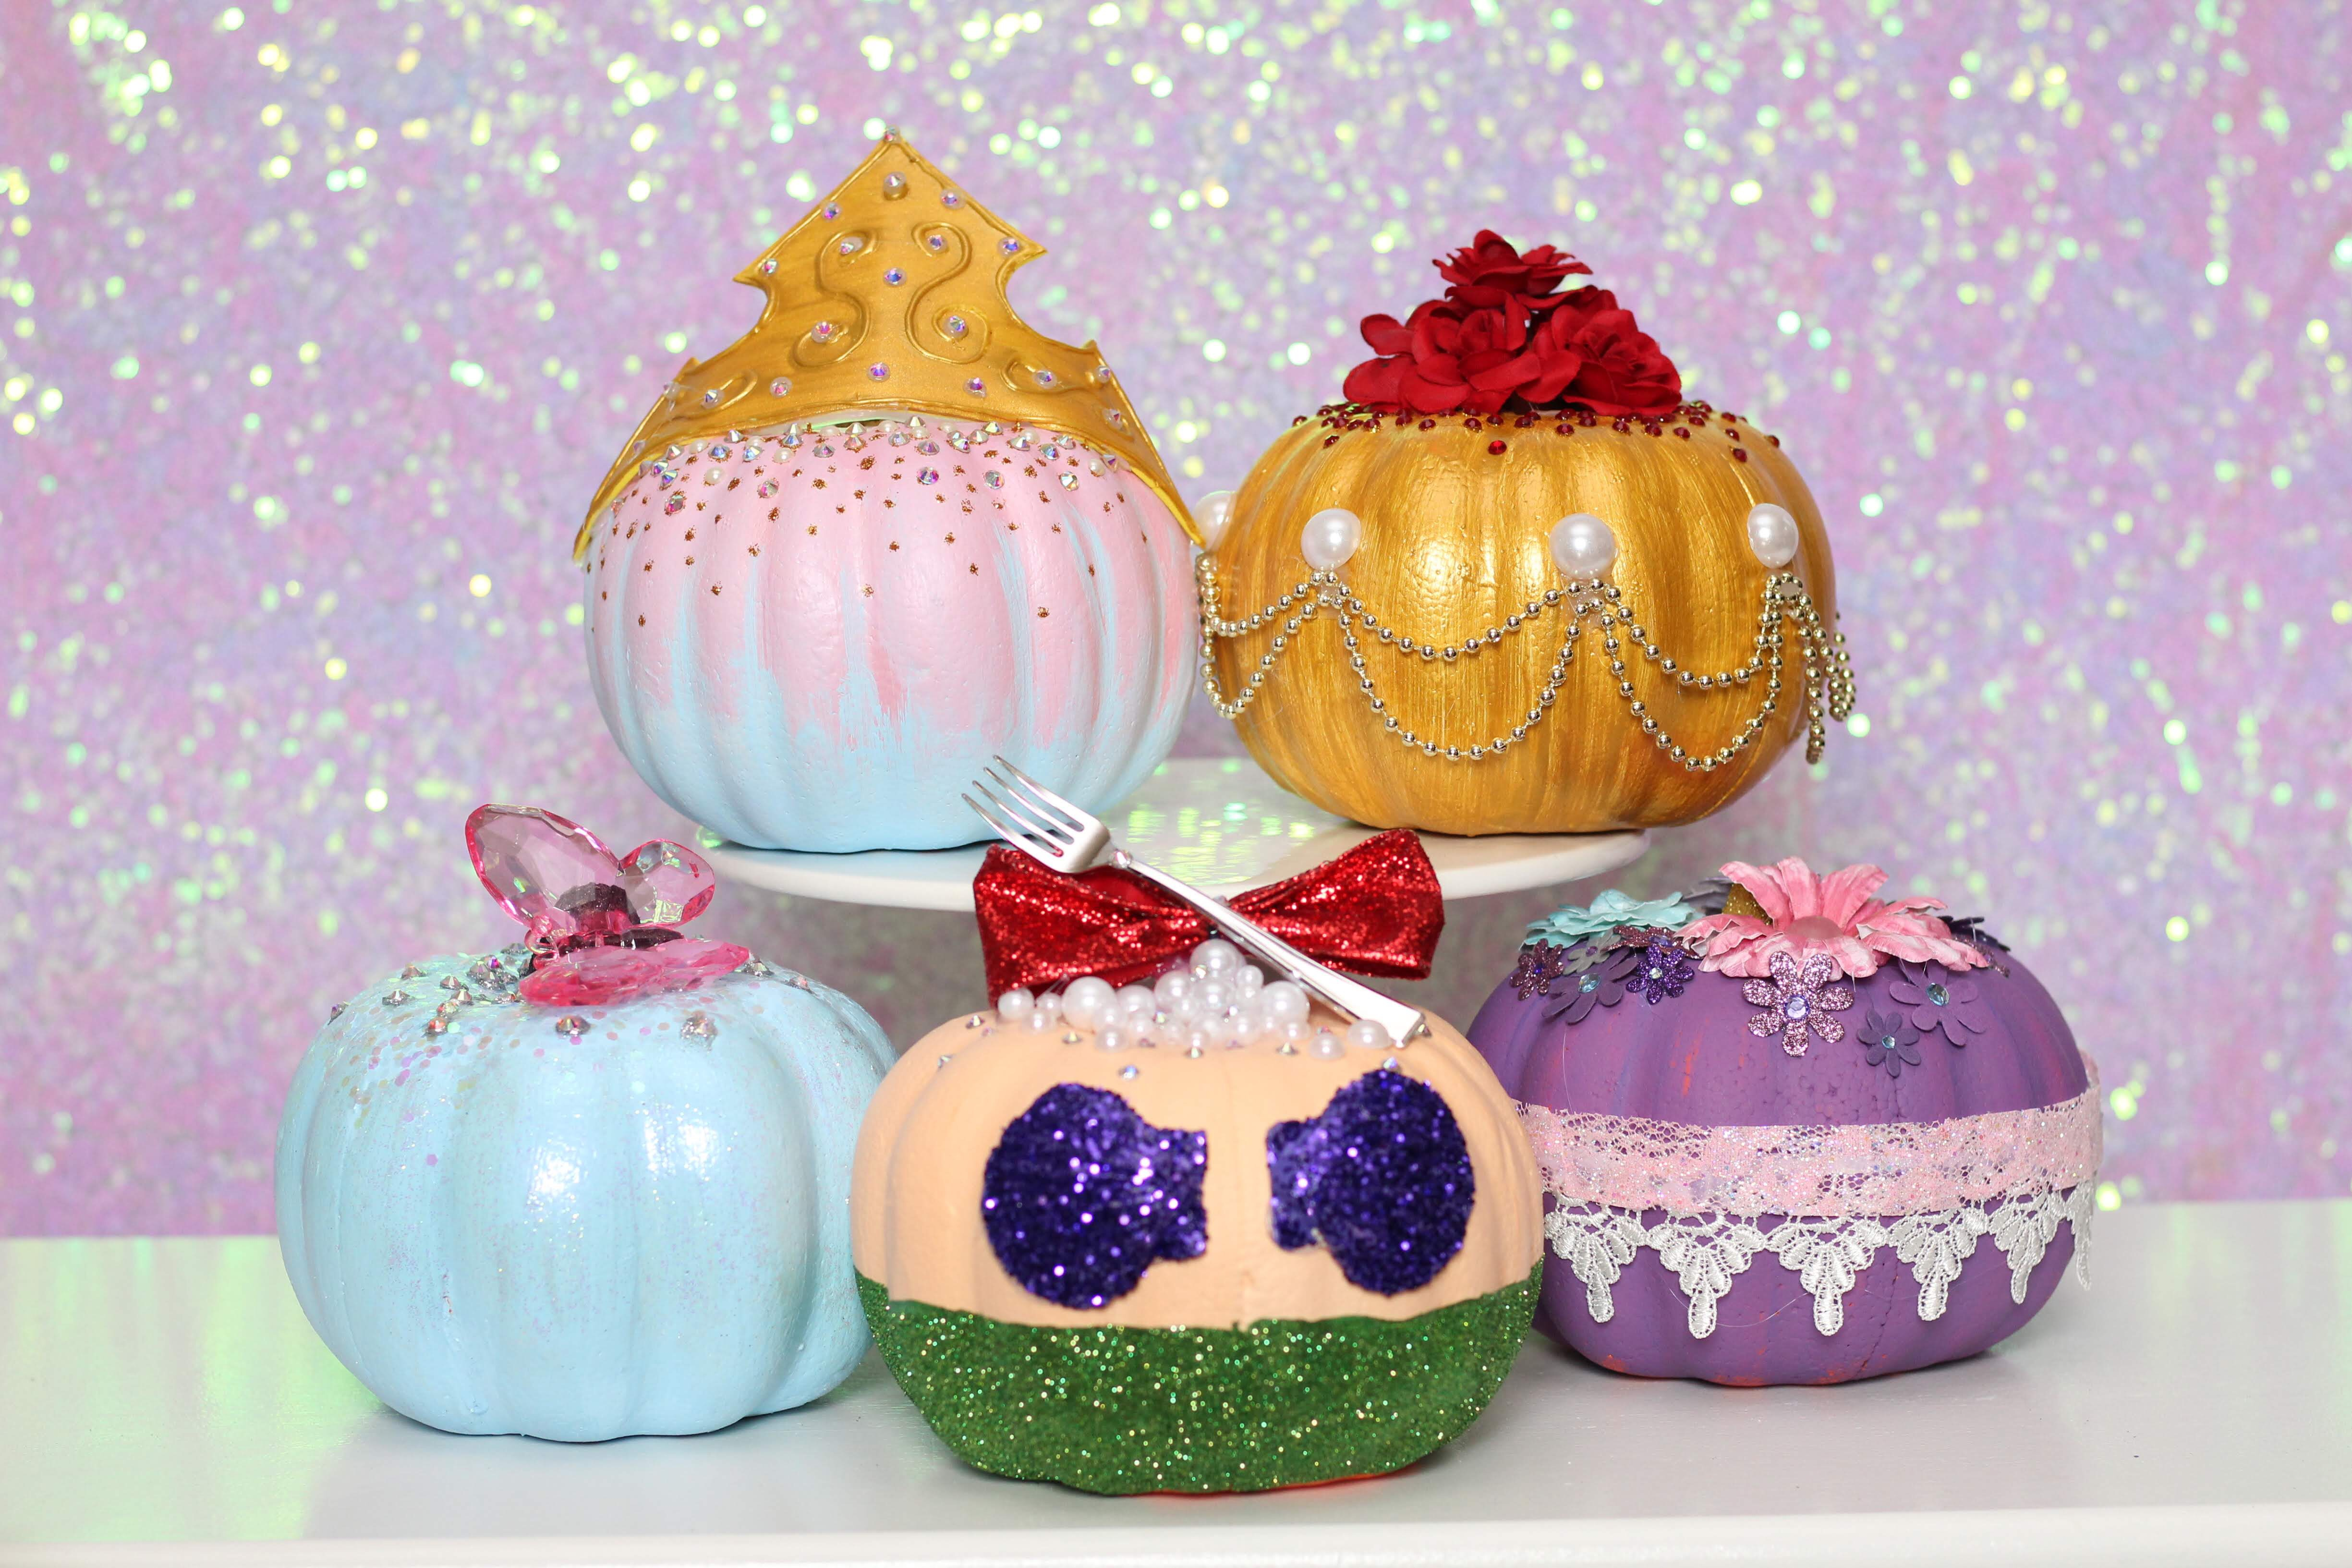 Disney Princess Pumpkins No Carve Dollar Tree Pumpkin Ideas